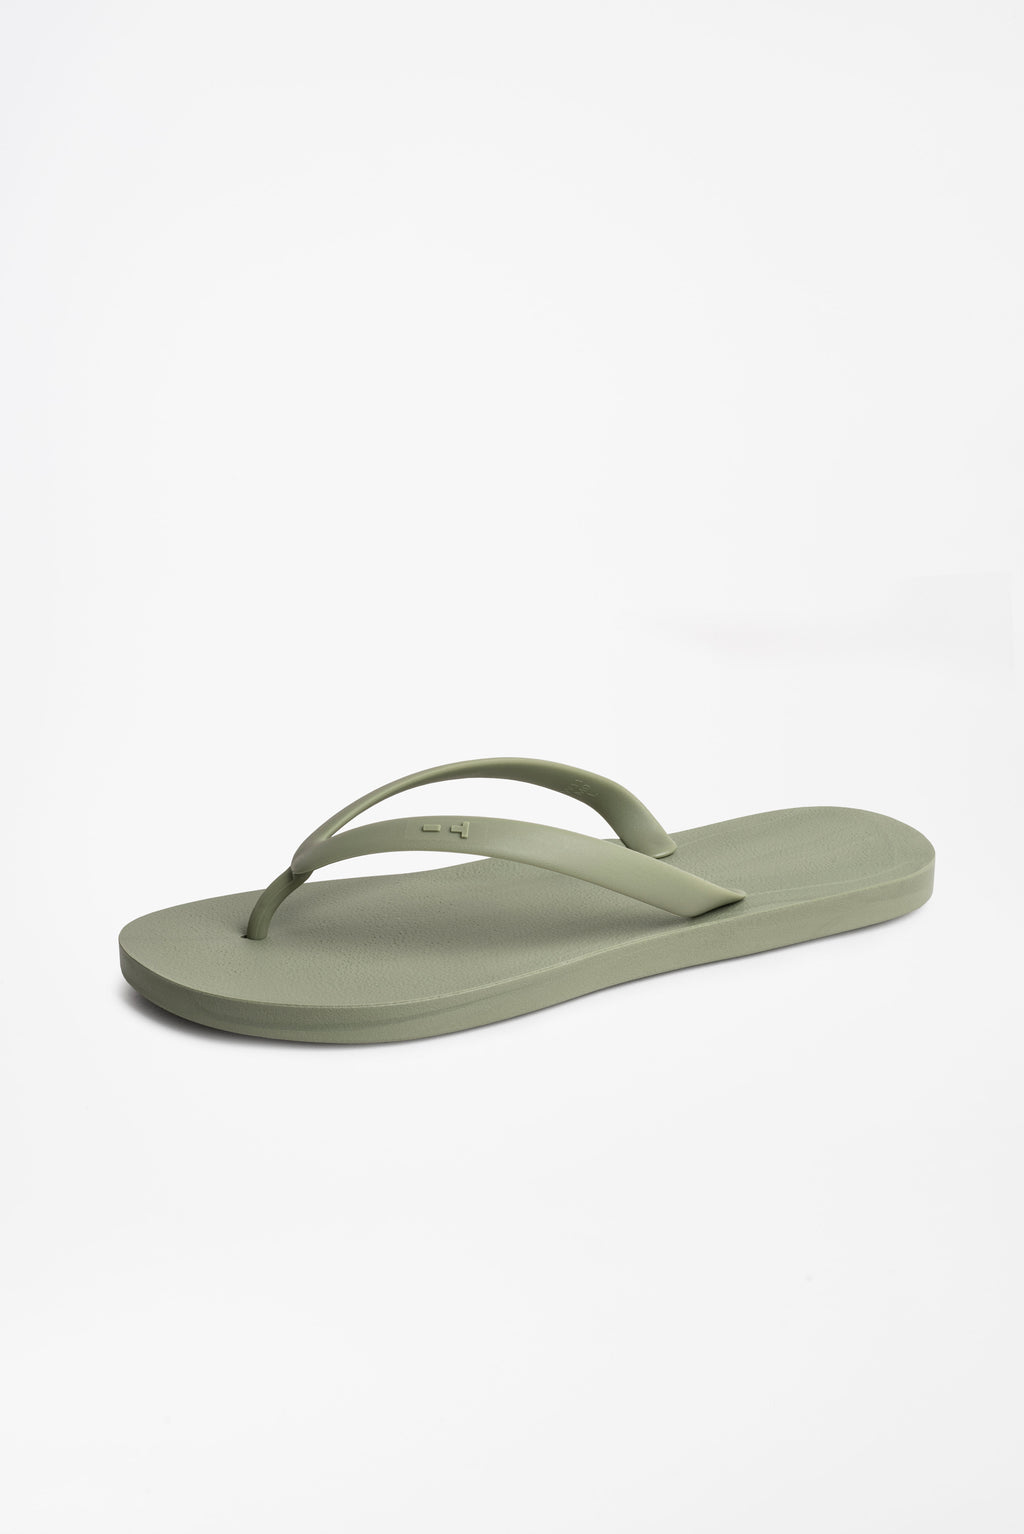 Men's flip flops in olive green and made in America